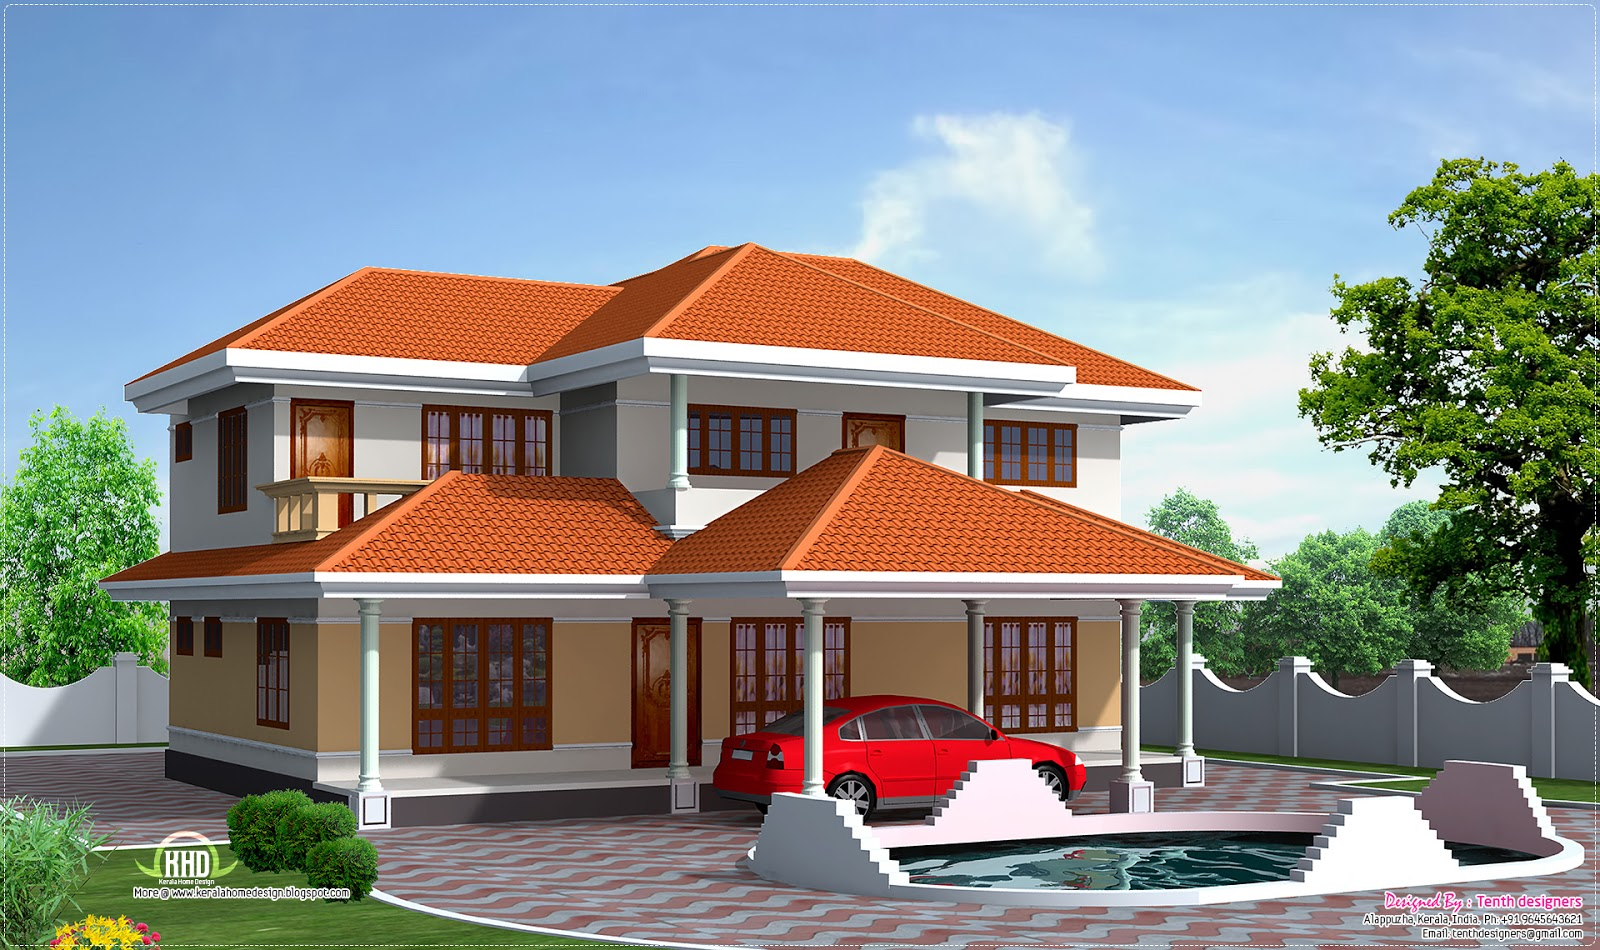 Four bedroom house elevation in 2500 sq feet home 2500 sq ft